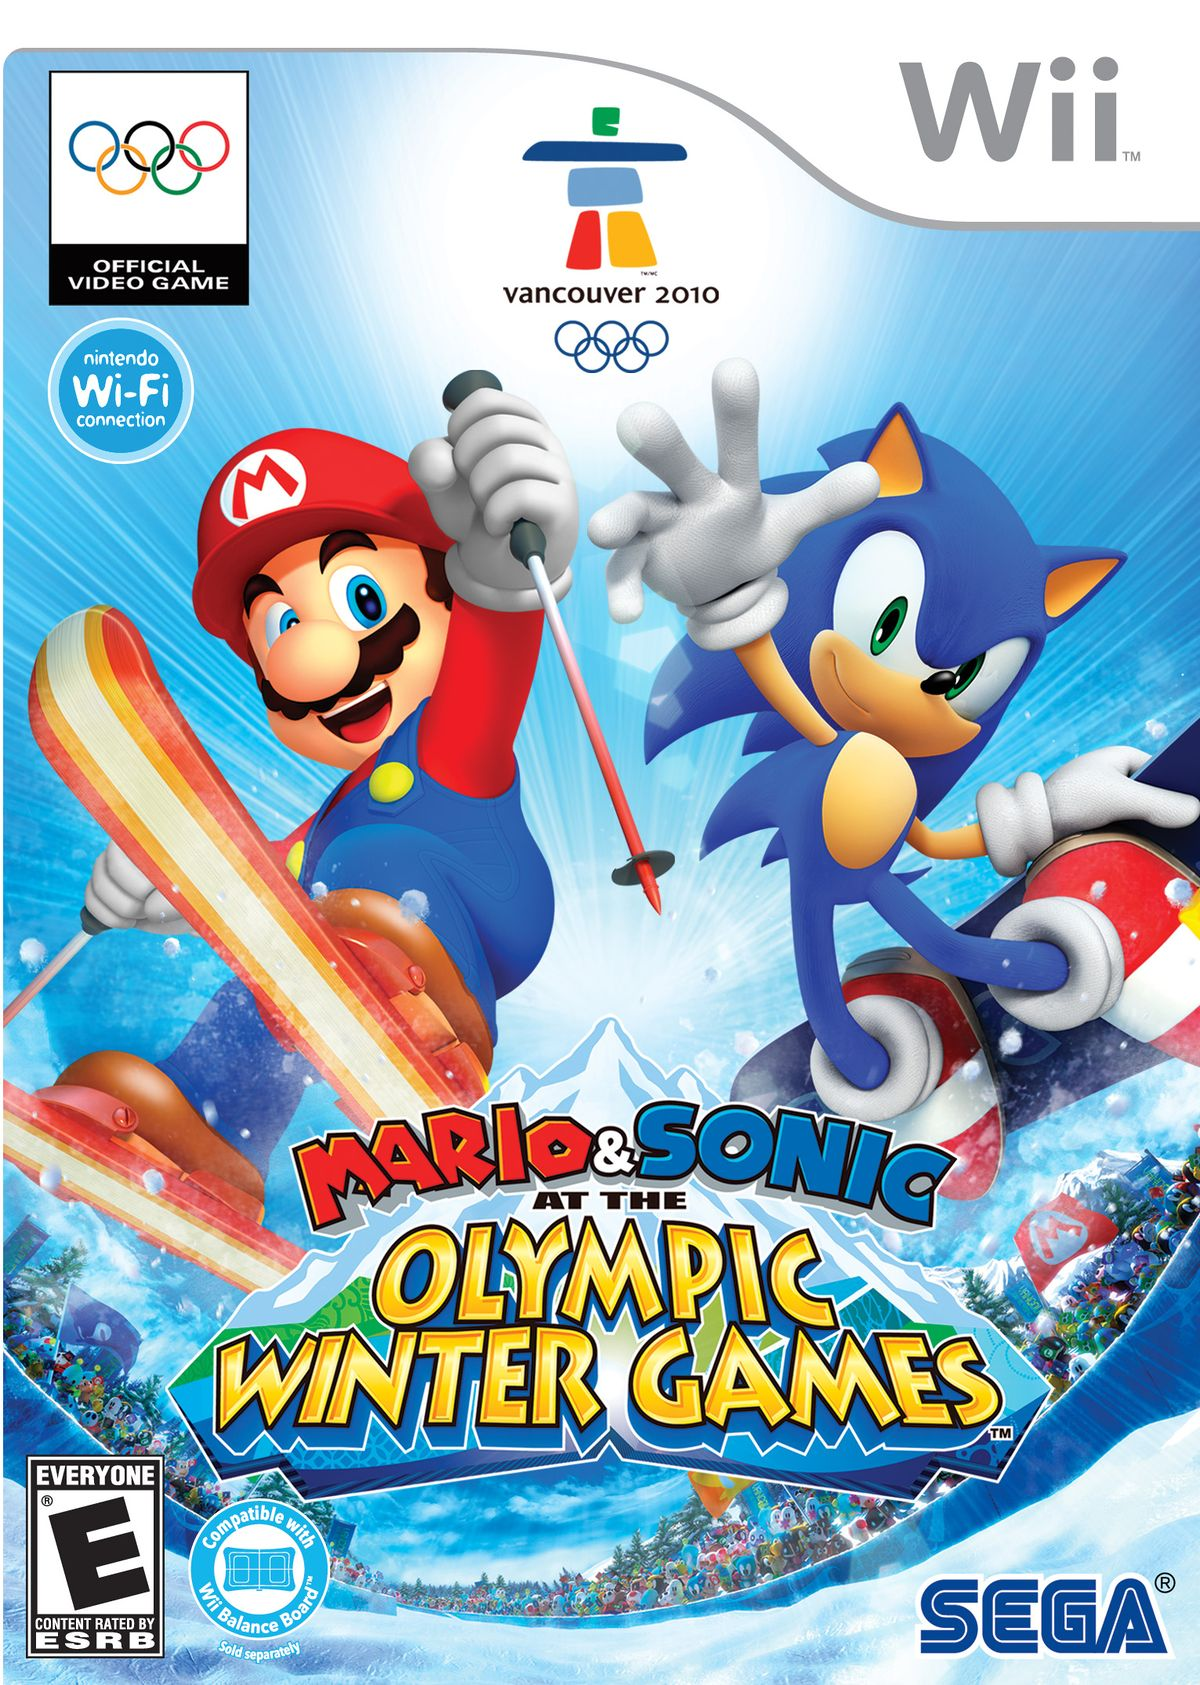 2bfef44be Mario   Sonic at the Olympic Winter Games (Wii) - Super Mario Wiki ...